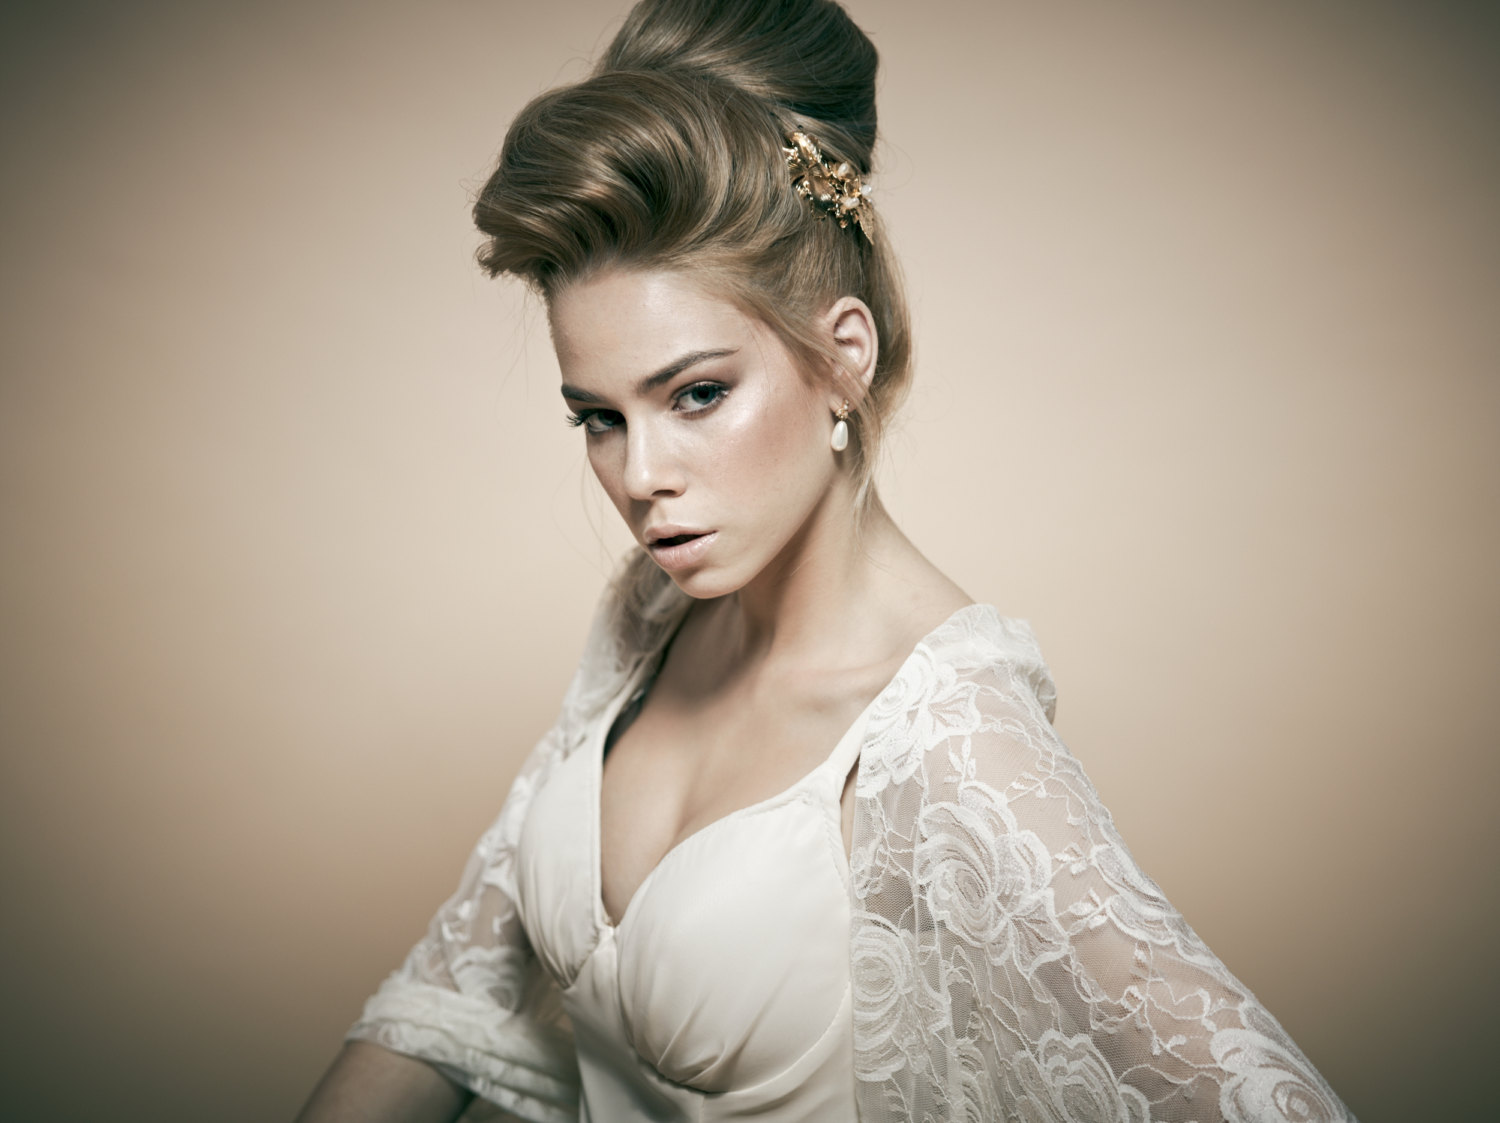 Bridal Hairstyles High Bun | Trend Hairstyle and Haircut Ideas